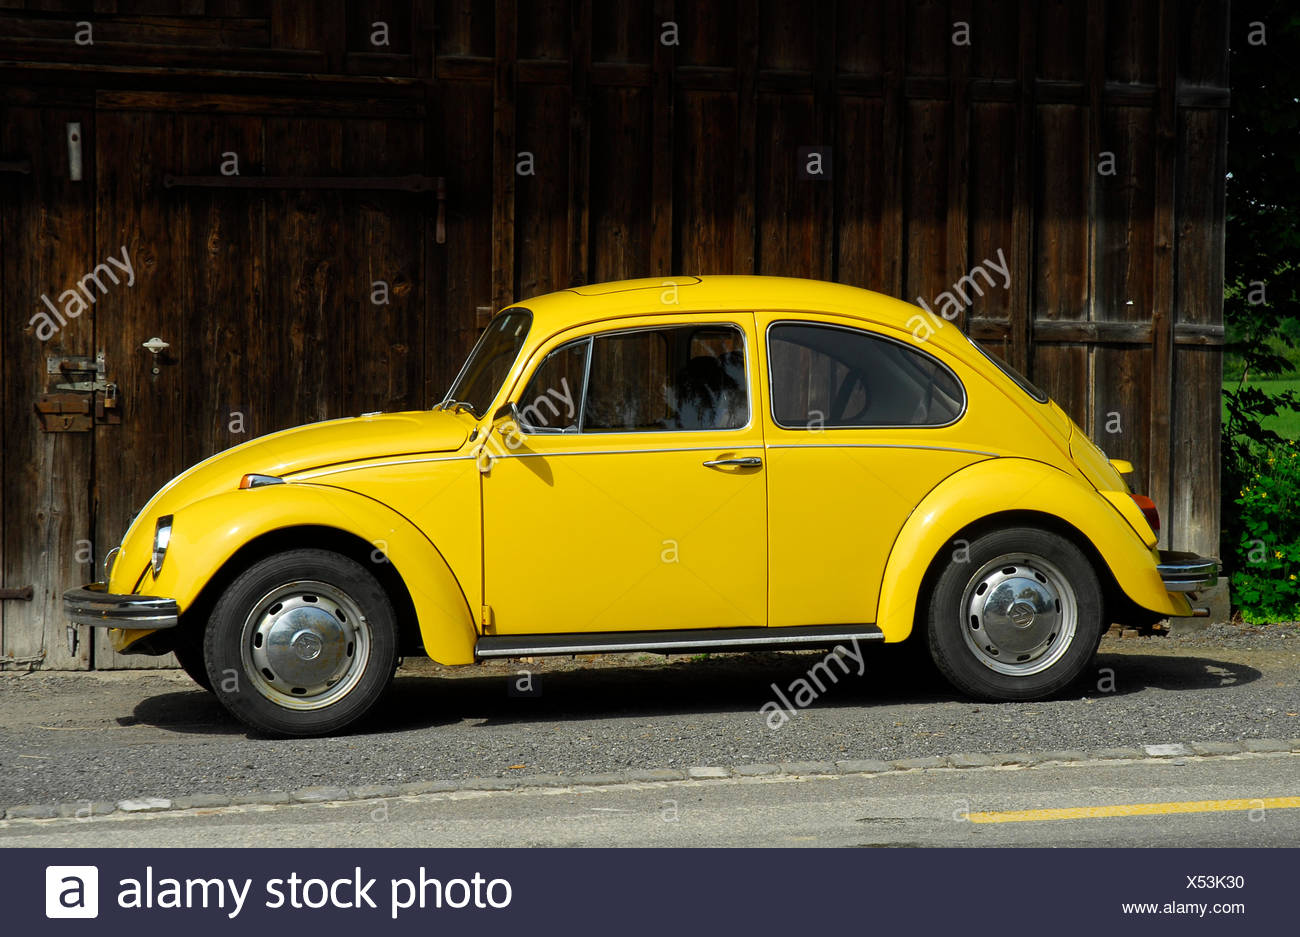 colour beetle year mileage luna model yellow volkswagen advertdetail